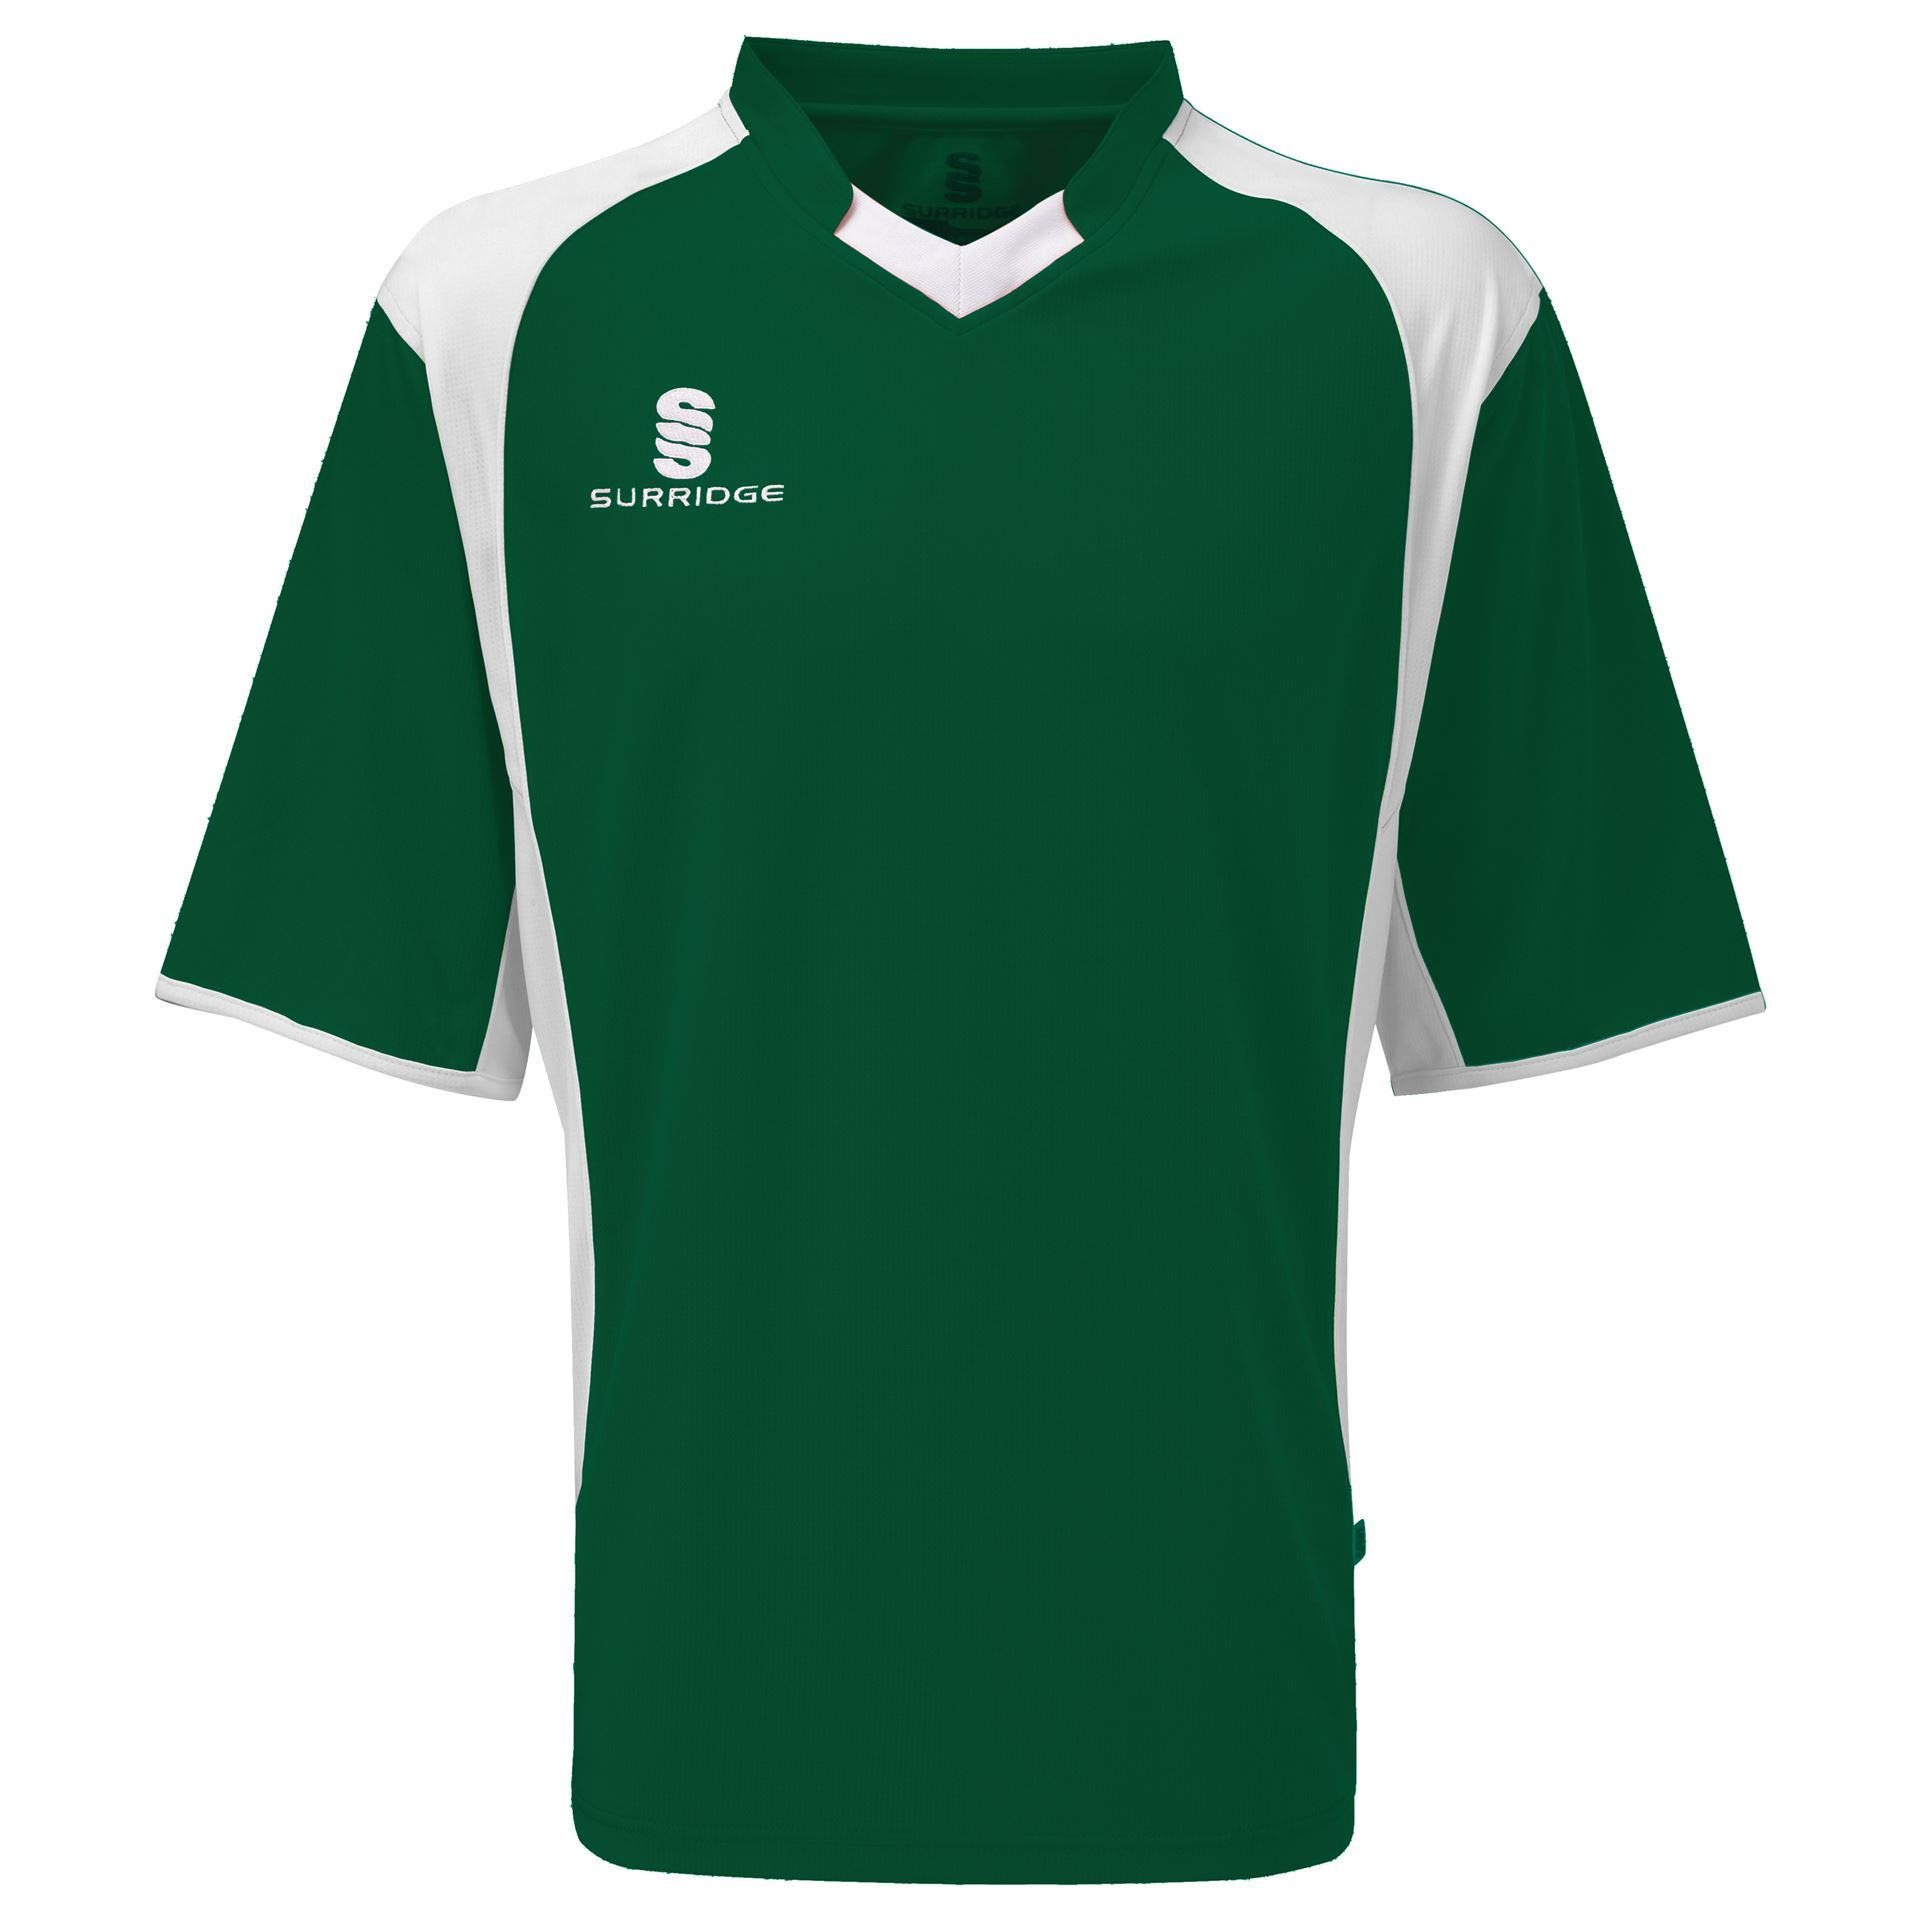 Surridge Sport - Training Shirt Green/White